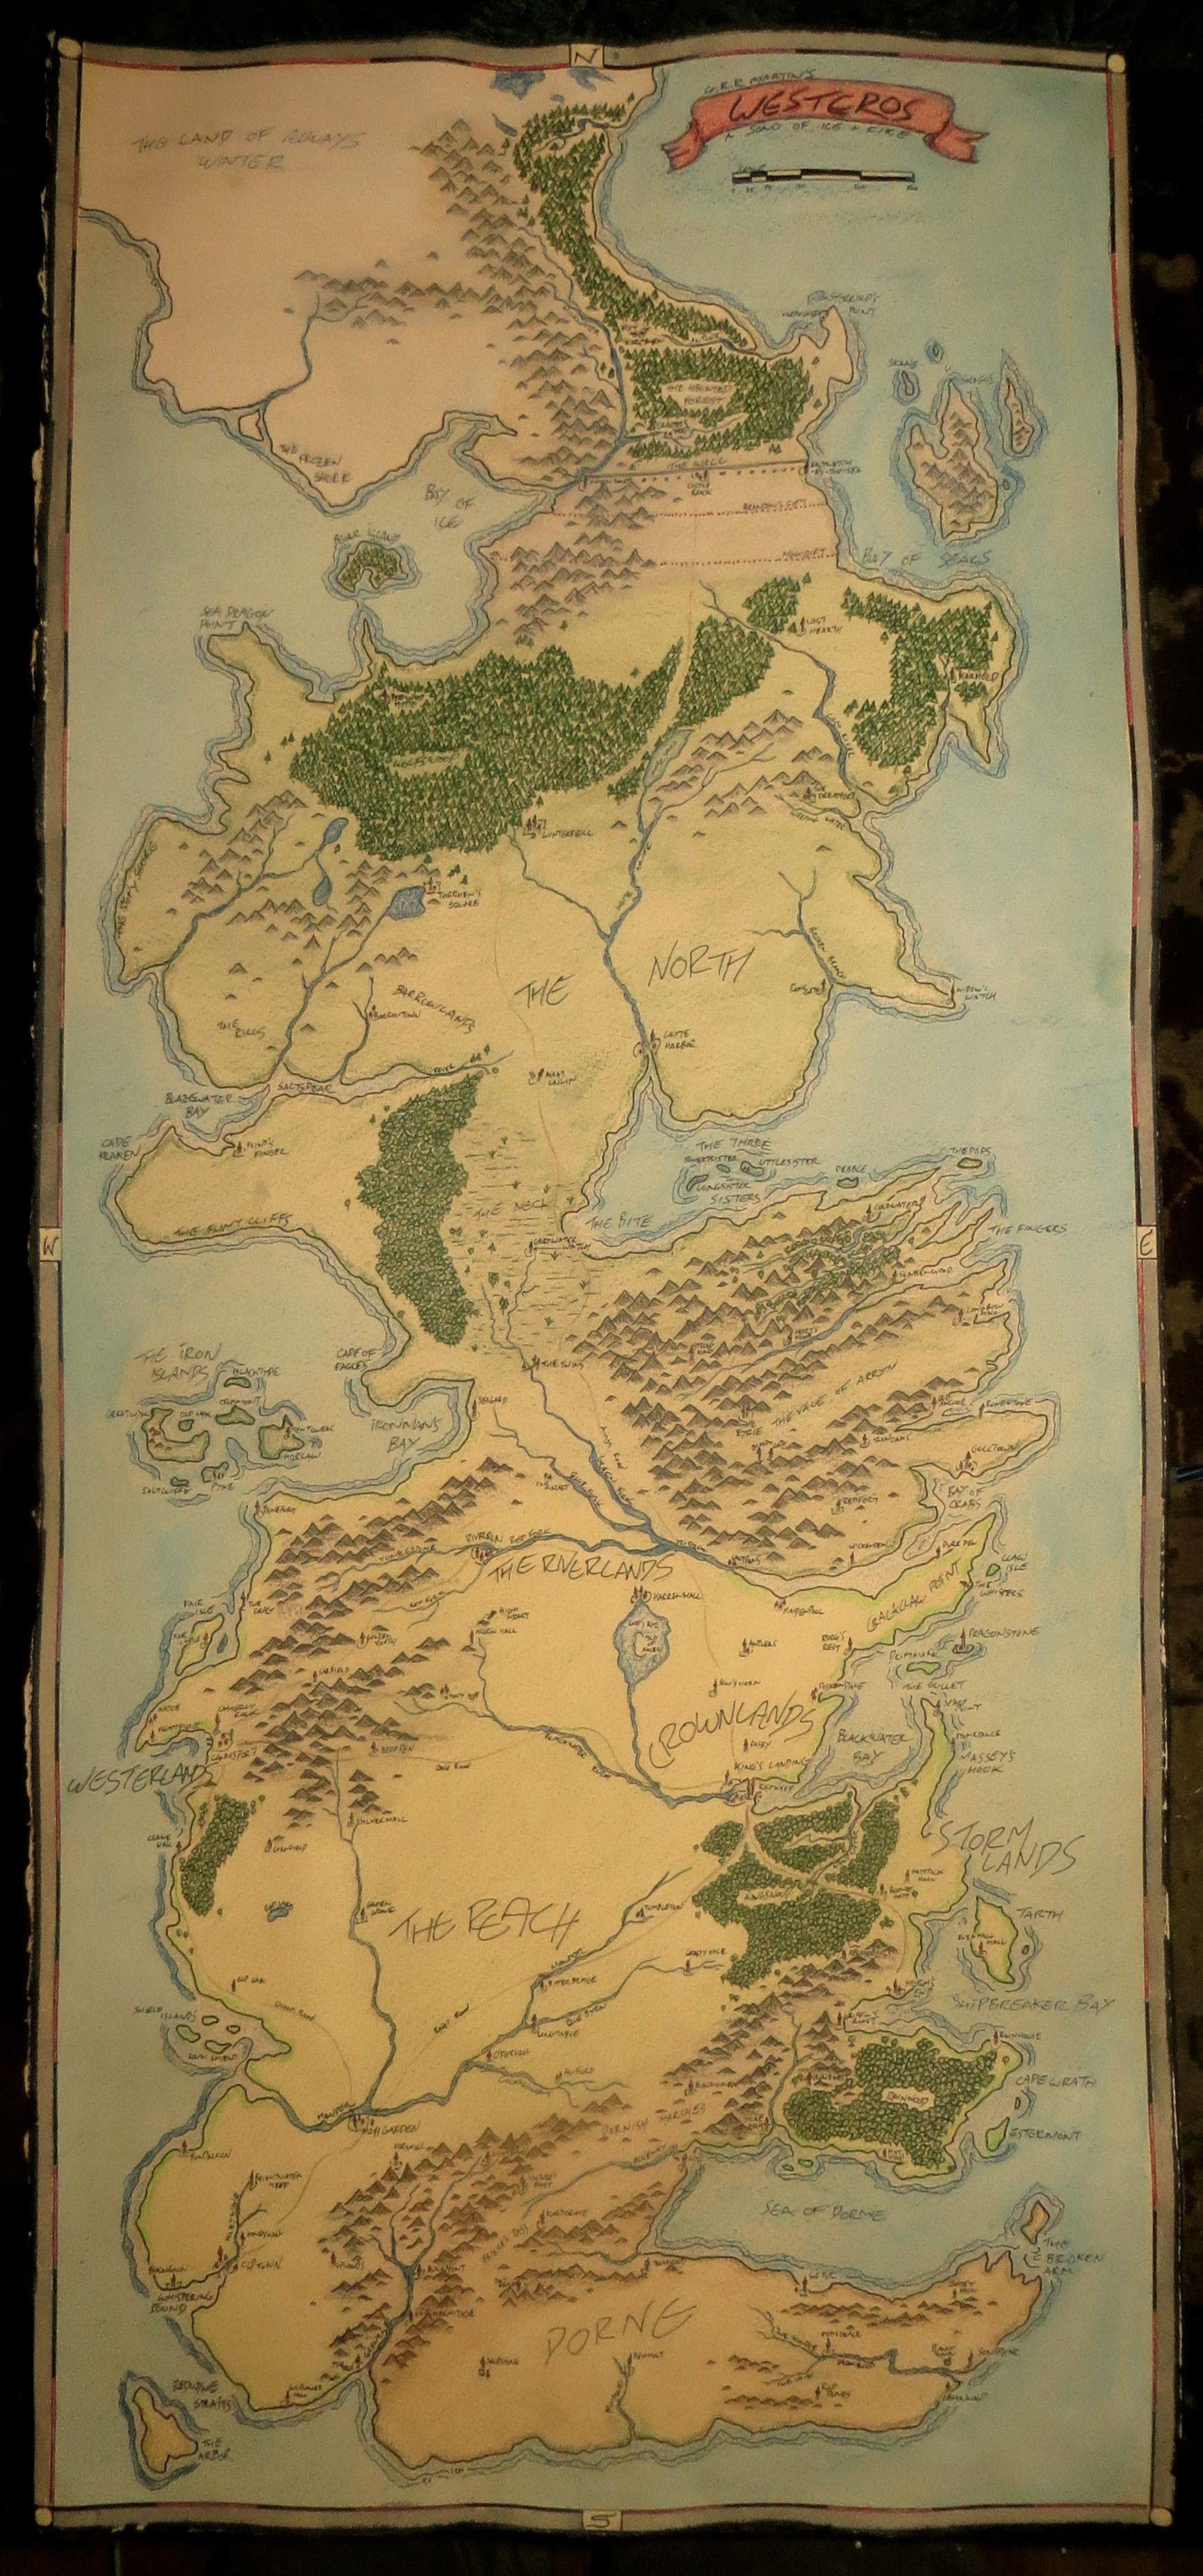 Westeros Map Wallpaper 48 Images